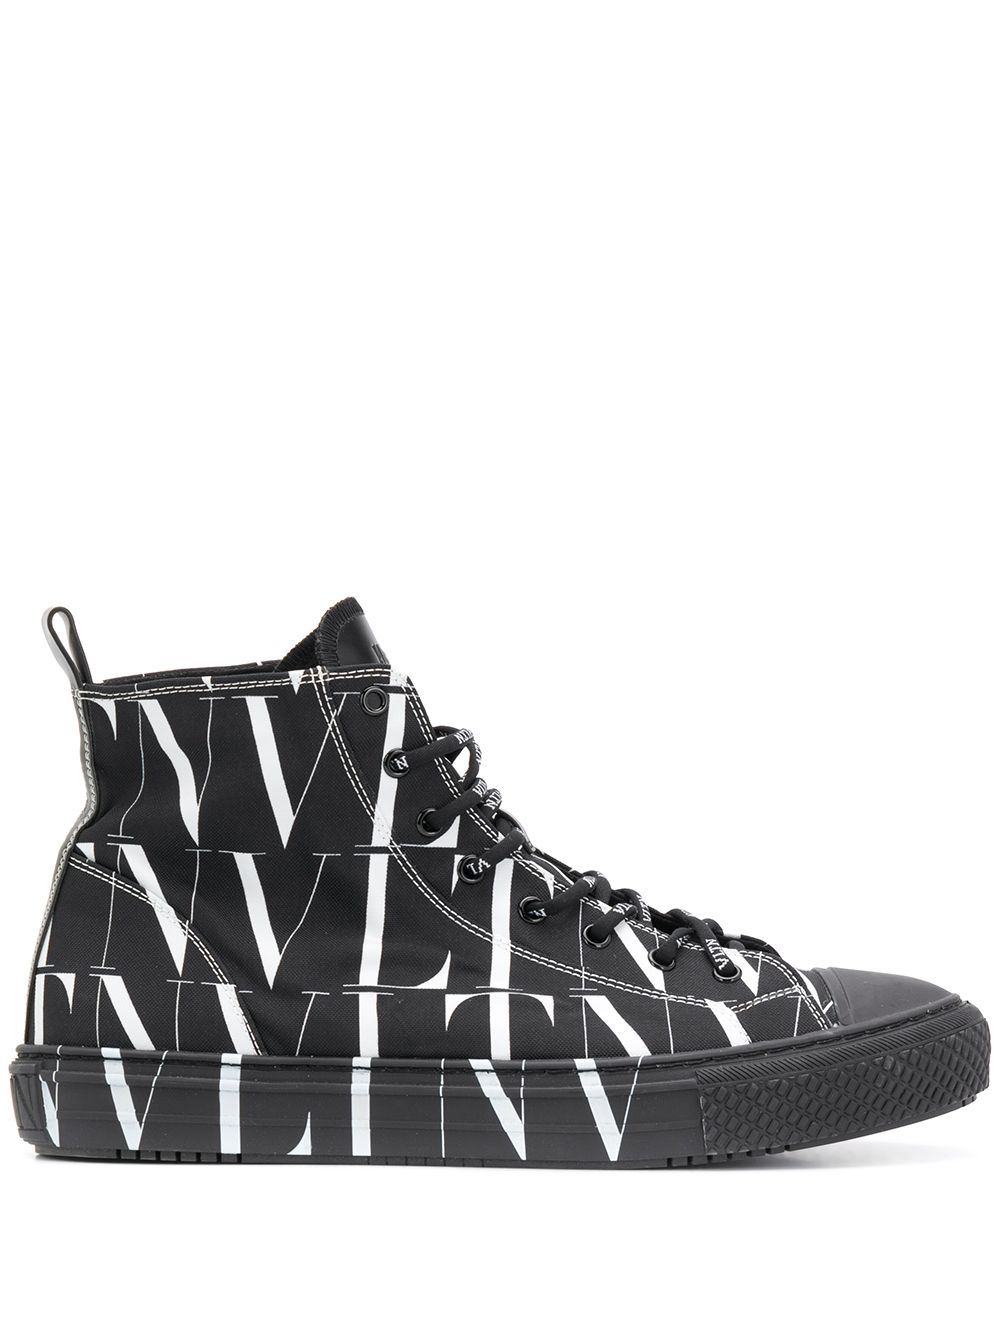 Giggies Vltn Sneakers